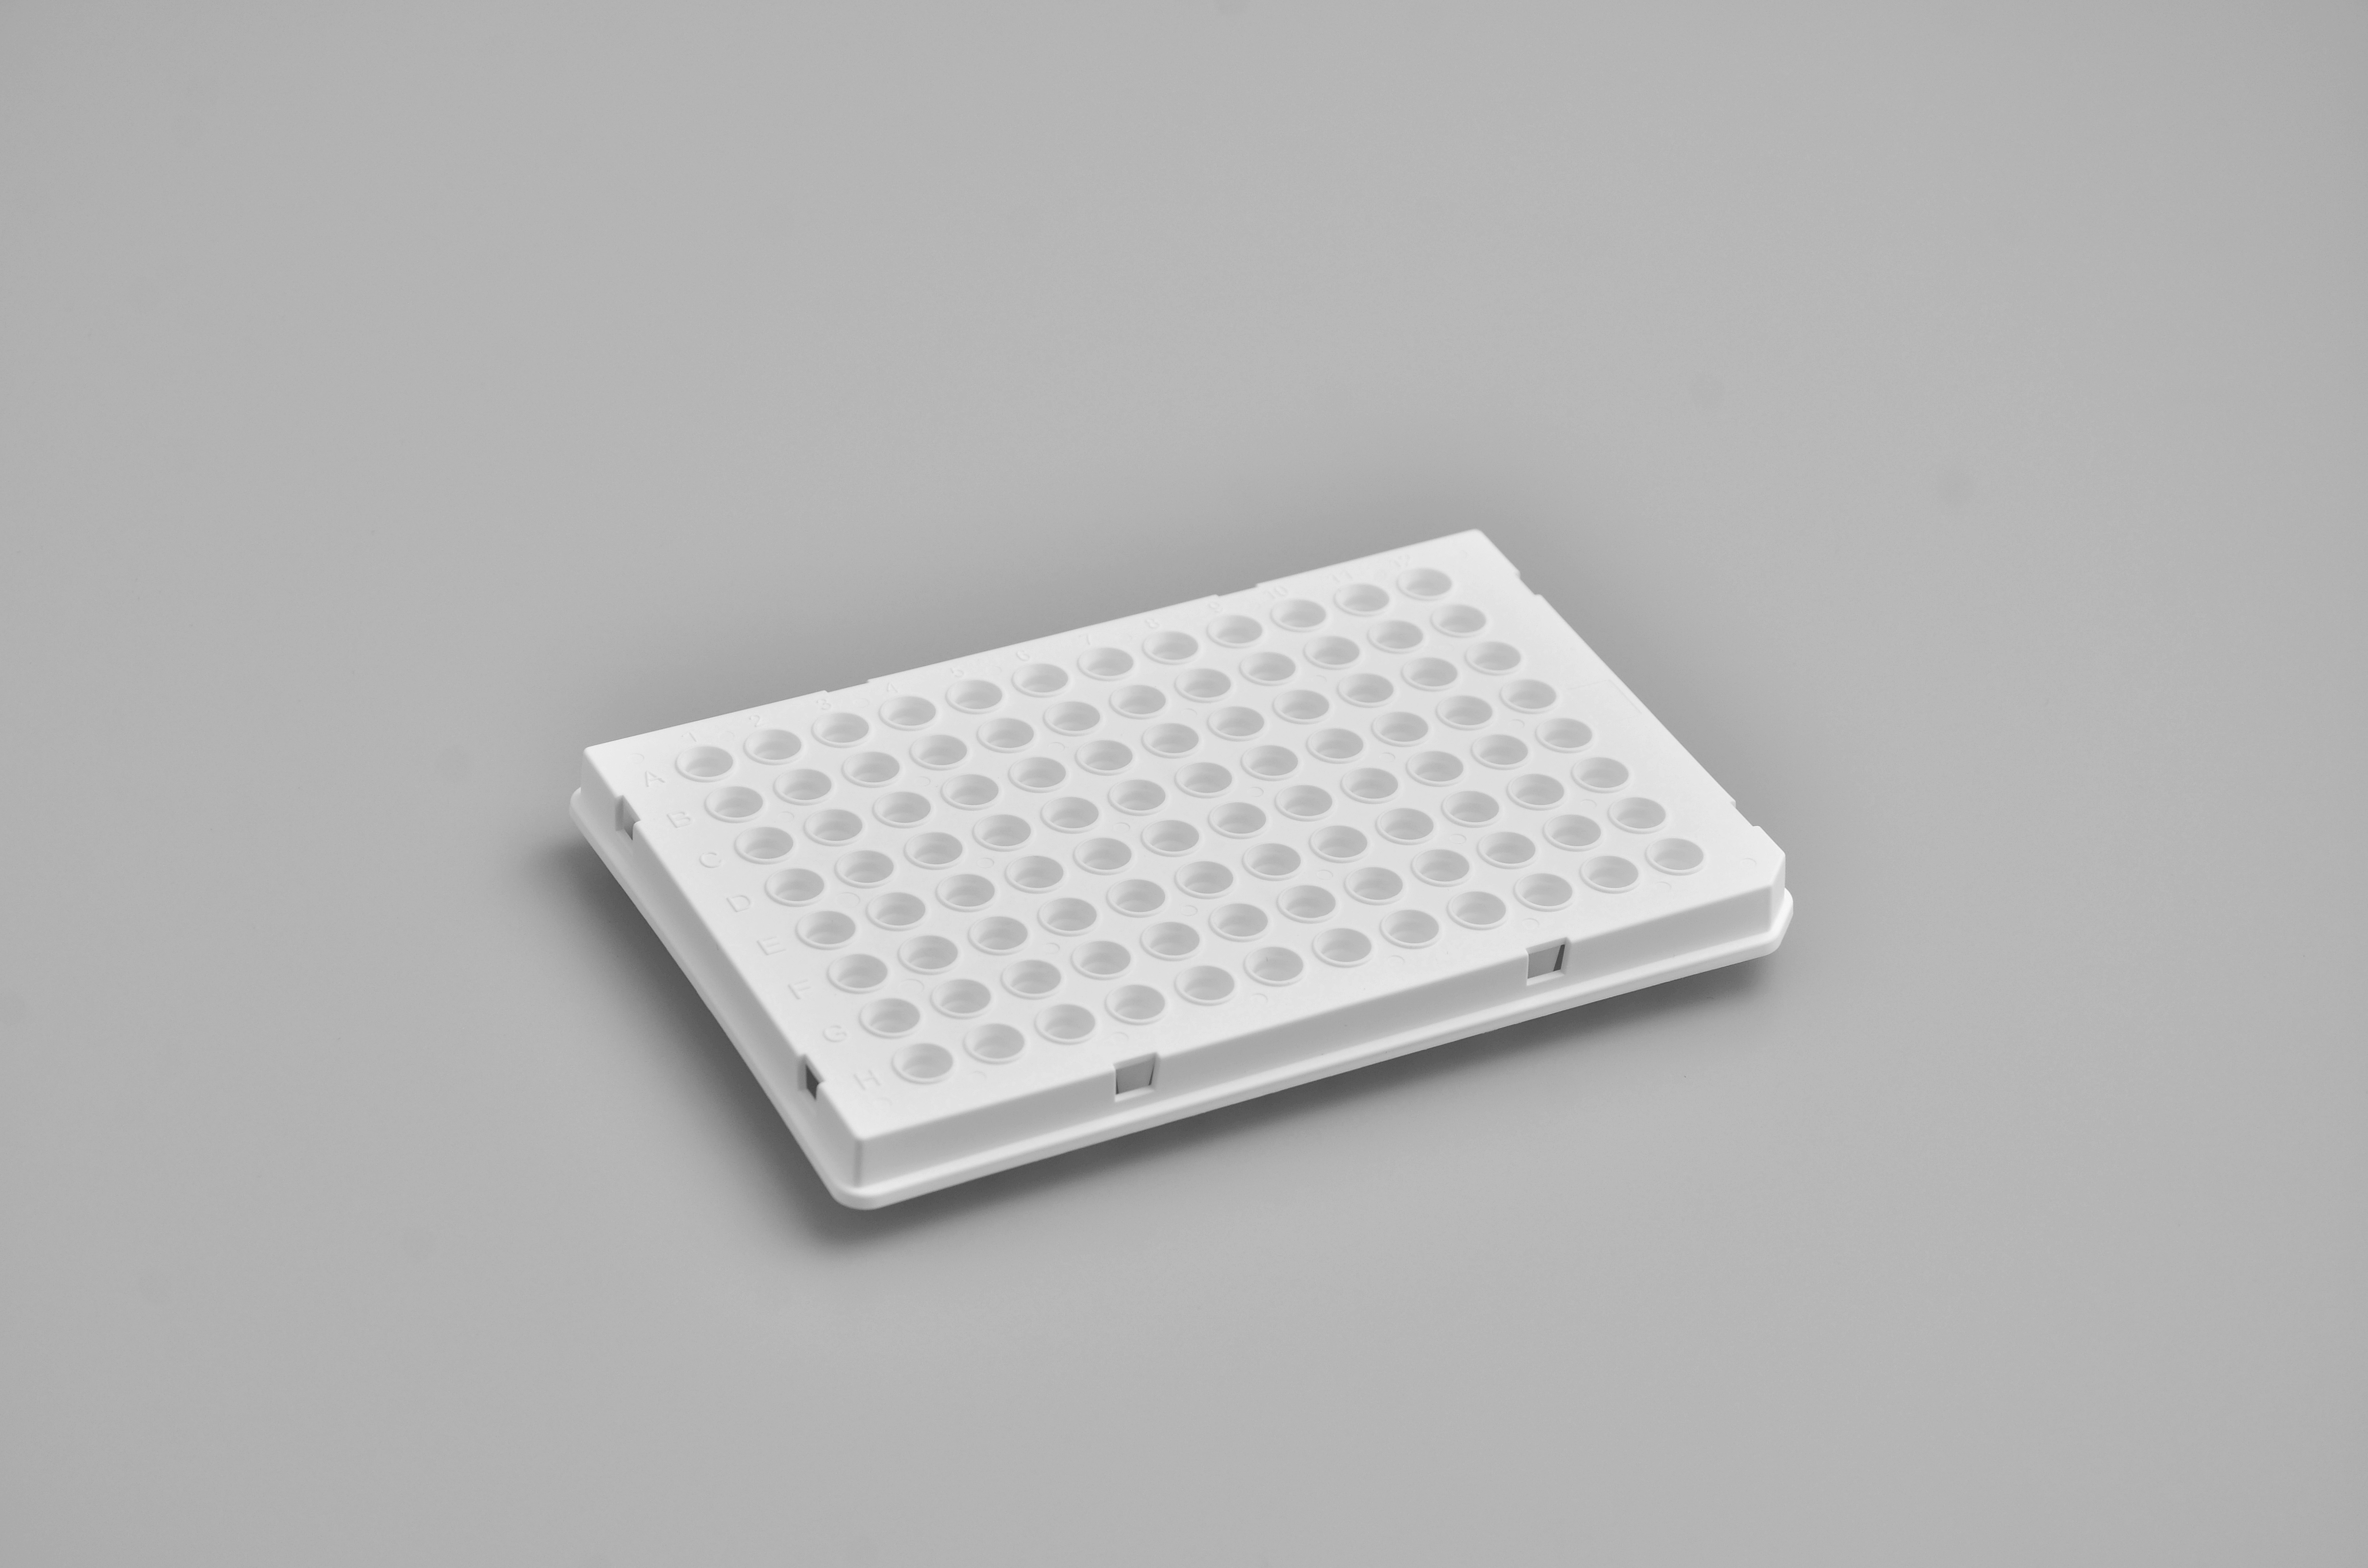 Semi-skirted 0.1mL 96-well qPCR Plate (white, with optically clear sealing film)